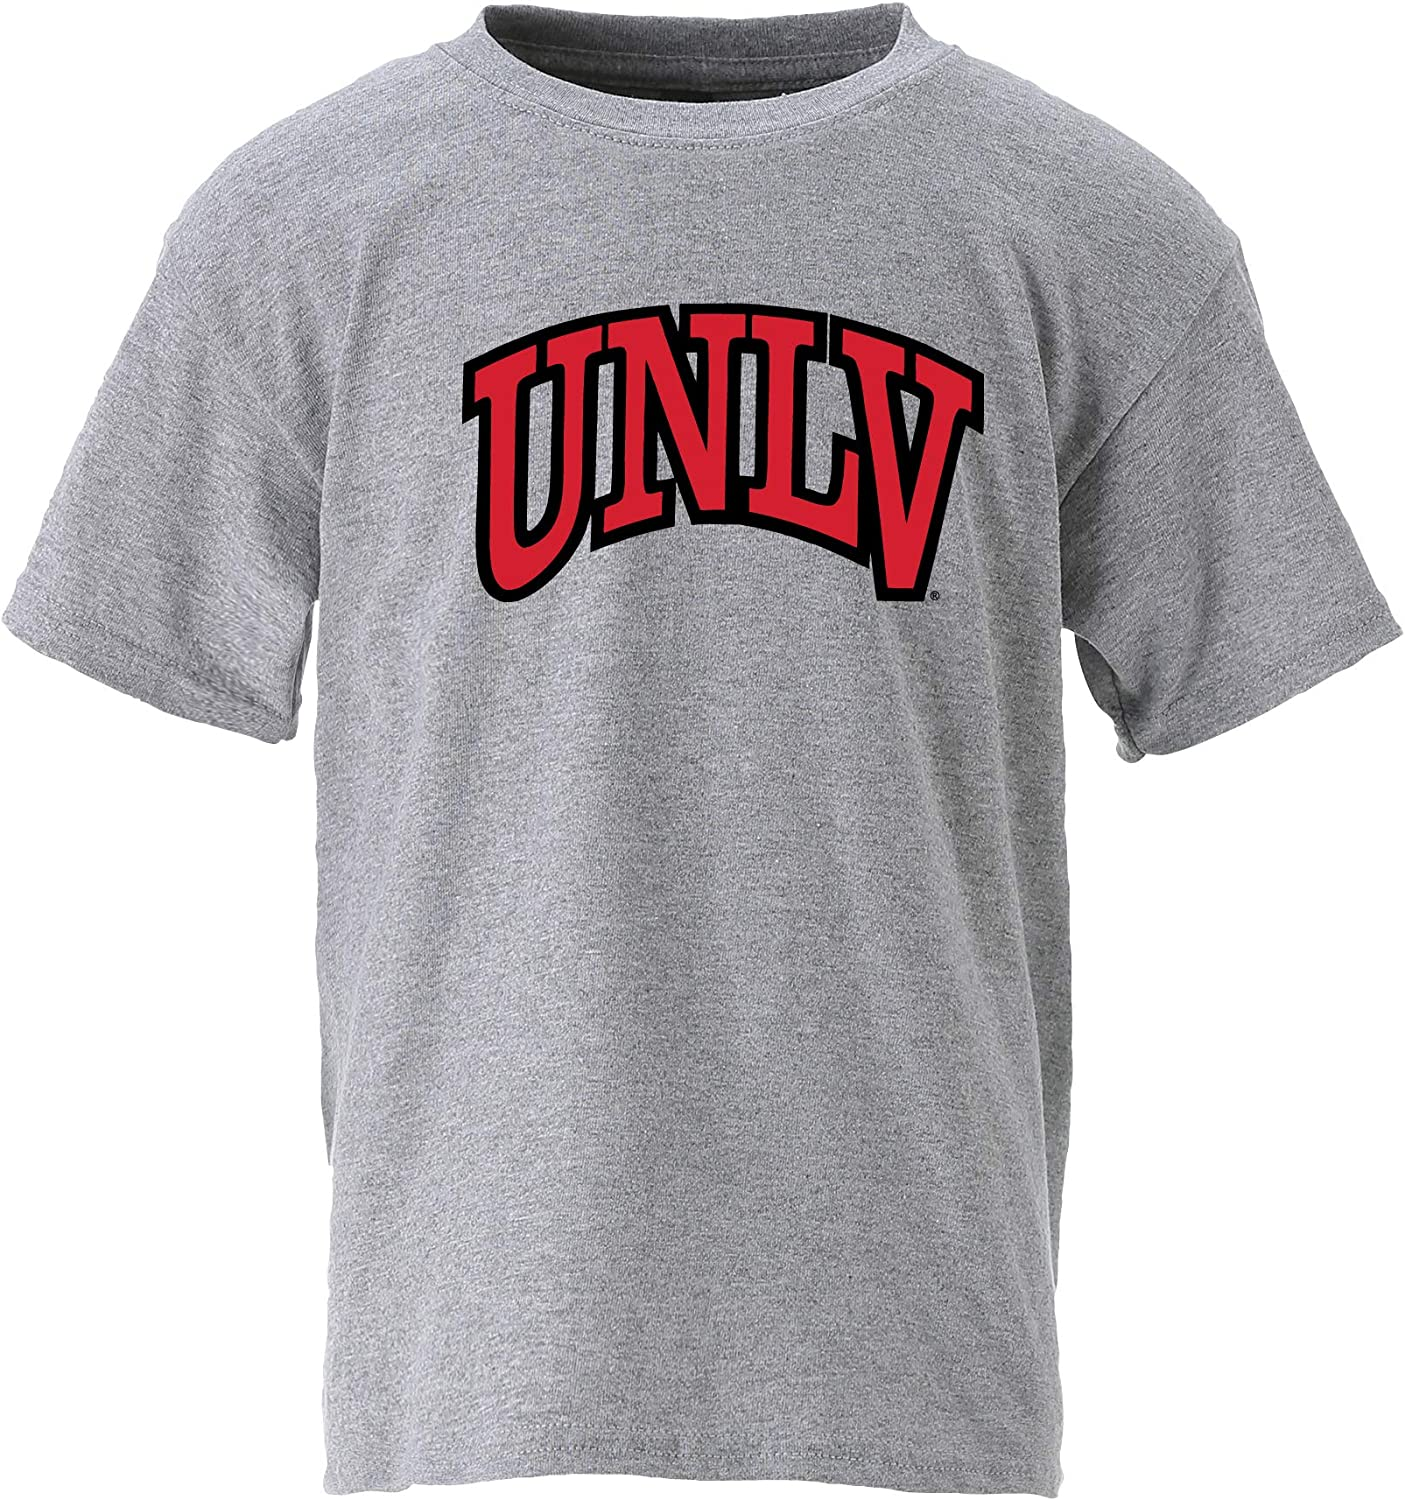 NCAA UNLV Rebels Youth Ouray TeeYouth Ouray Tee